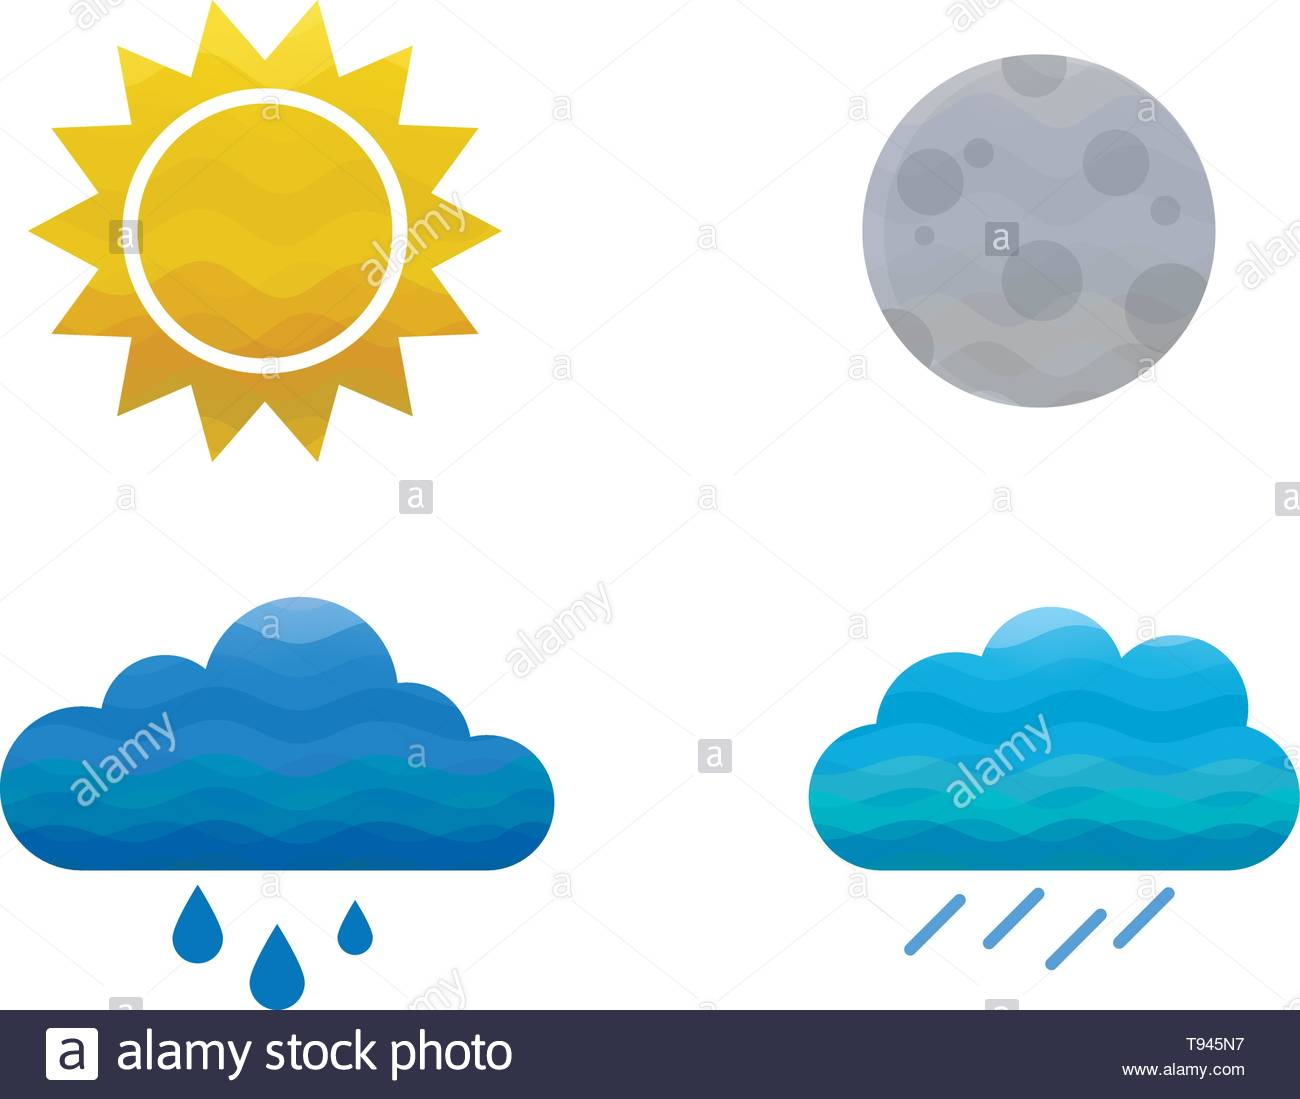 Modern vector weather icons - sun, moon, heavy rain cloouds and rain cloud. - Stock Image